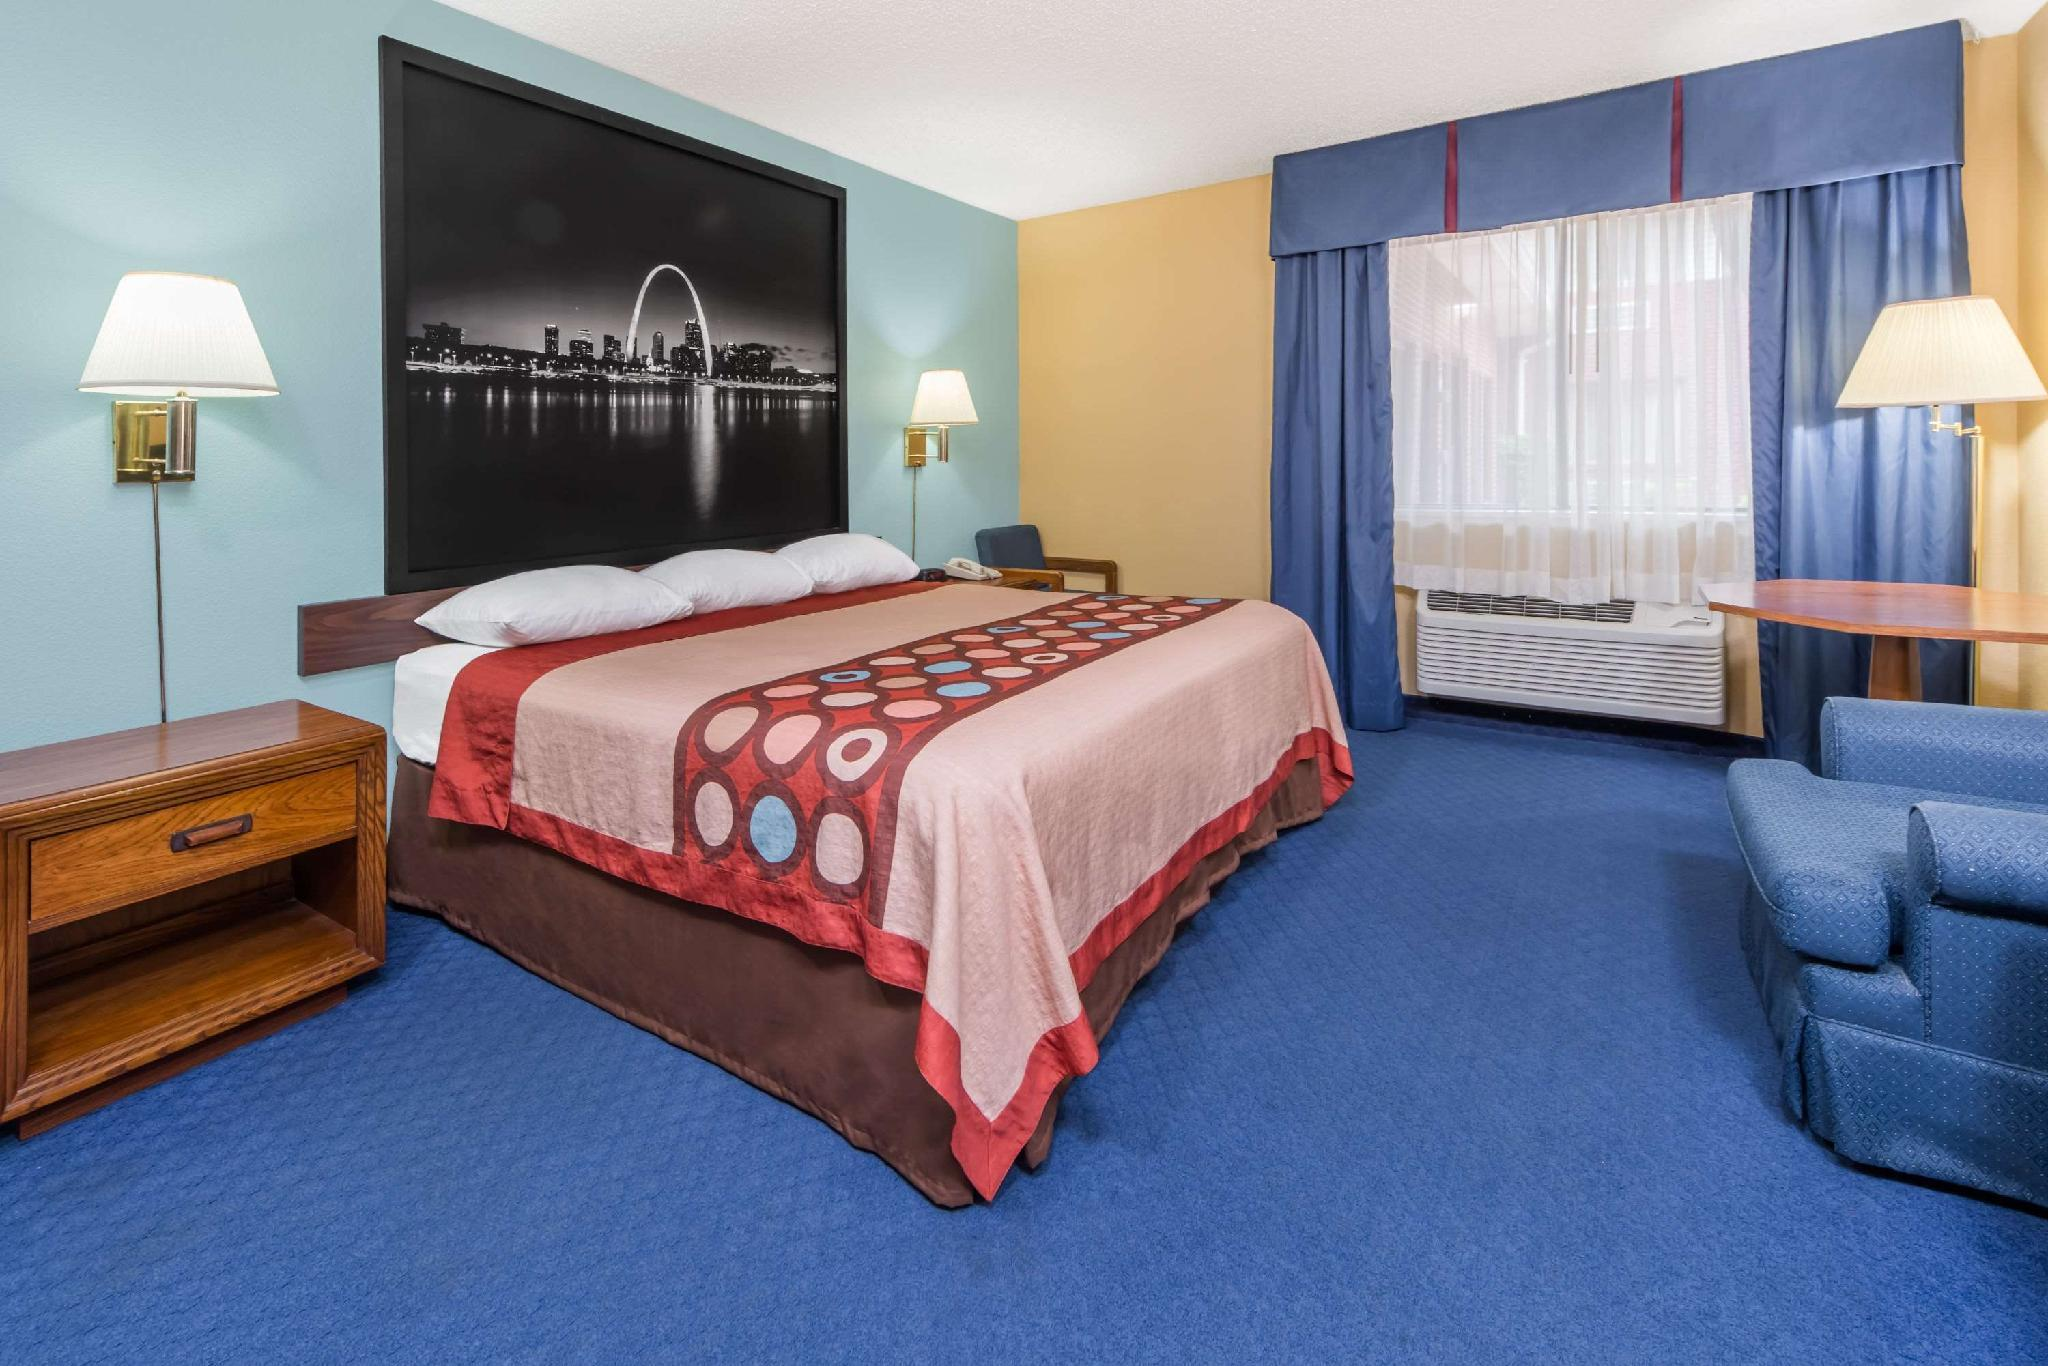 1 King Bed, Mobility Accessible Room, Non-Smoking